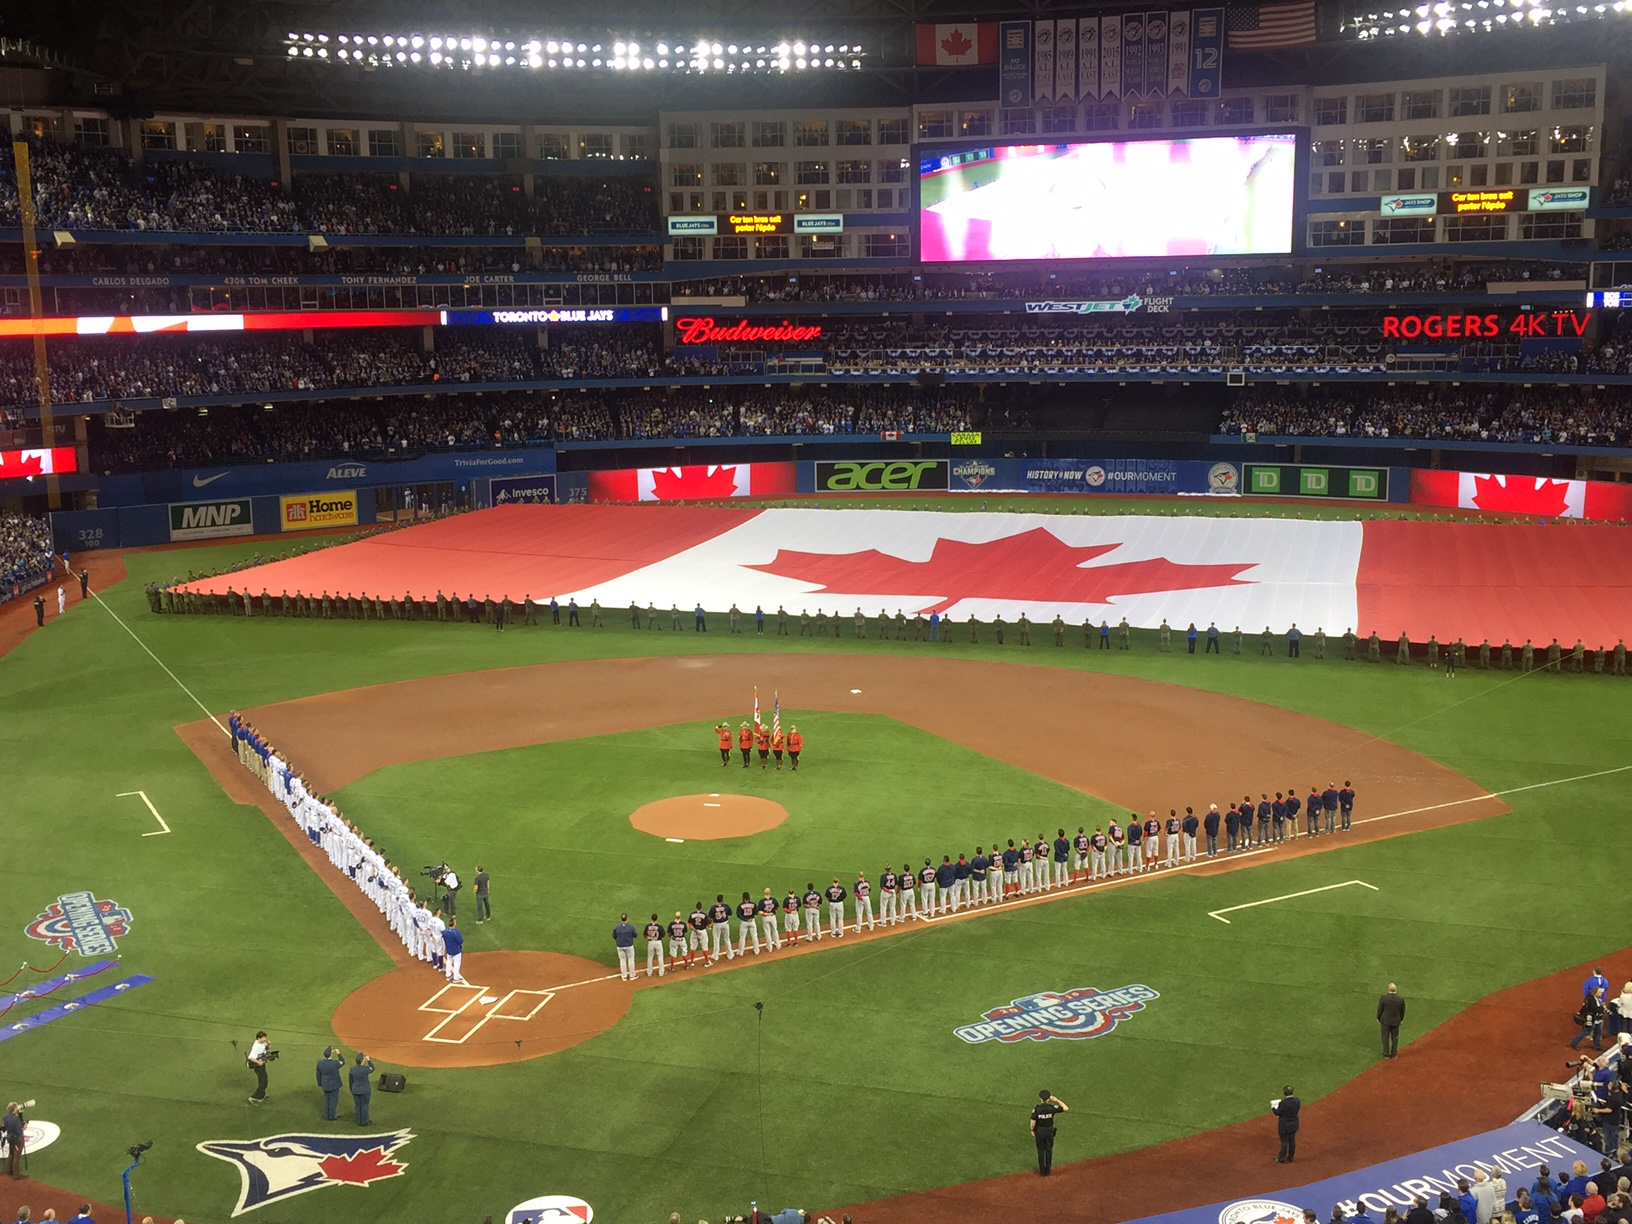 The Rogers Centre, home of the Toronto Blue Jays, is decked out during the playing of O, Canada during Friday night's home opener vs. the Red Sox (Mike Harrington/Buffalo News).